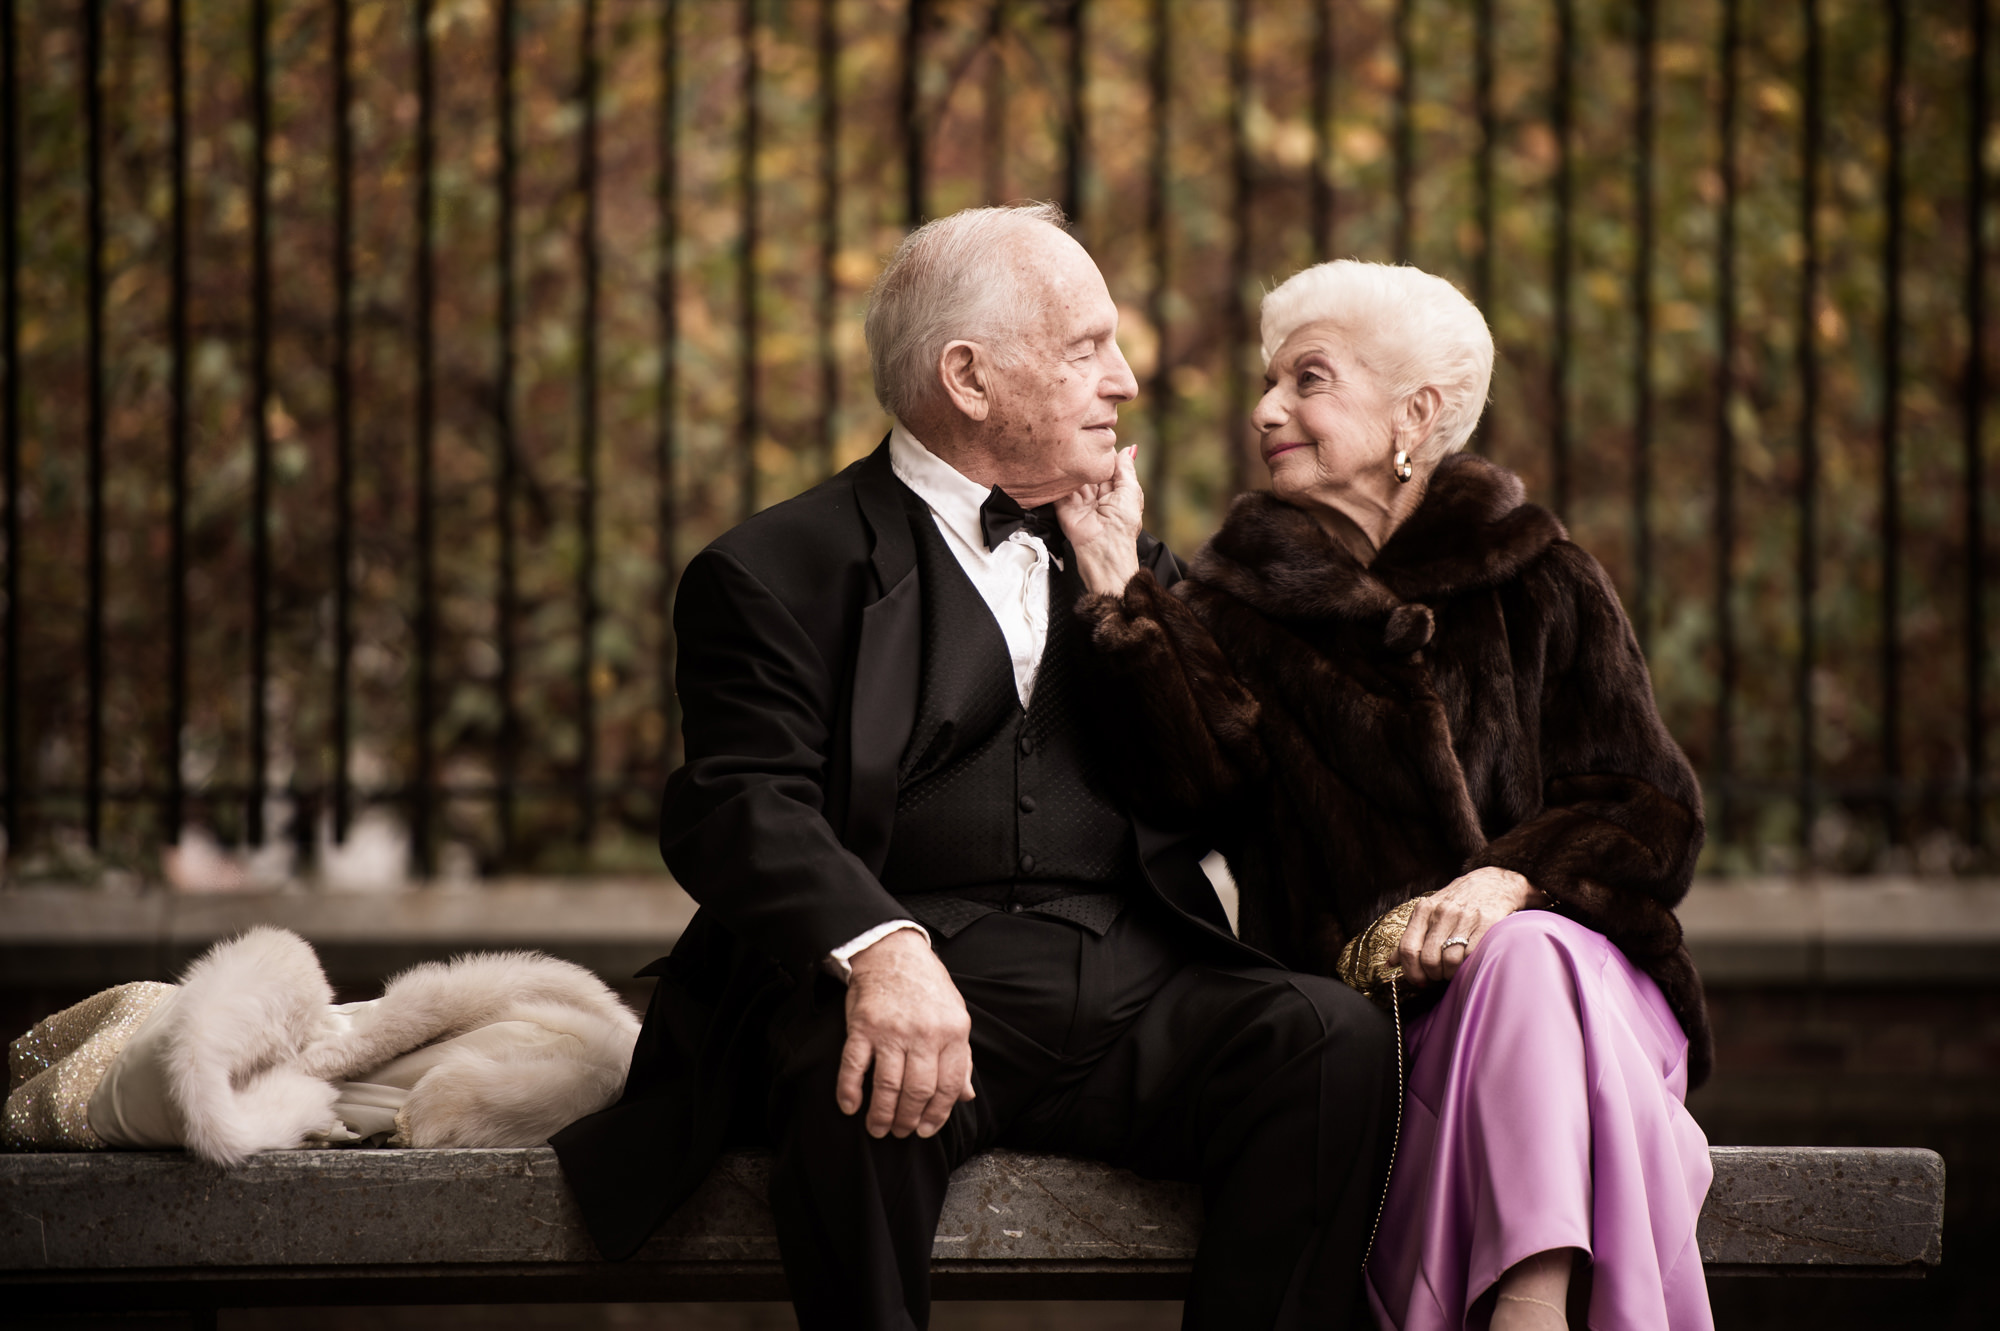 Older bride and groom share a tender moment at the park, by Cliff Mautner